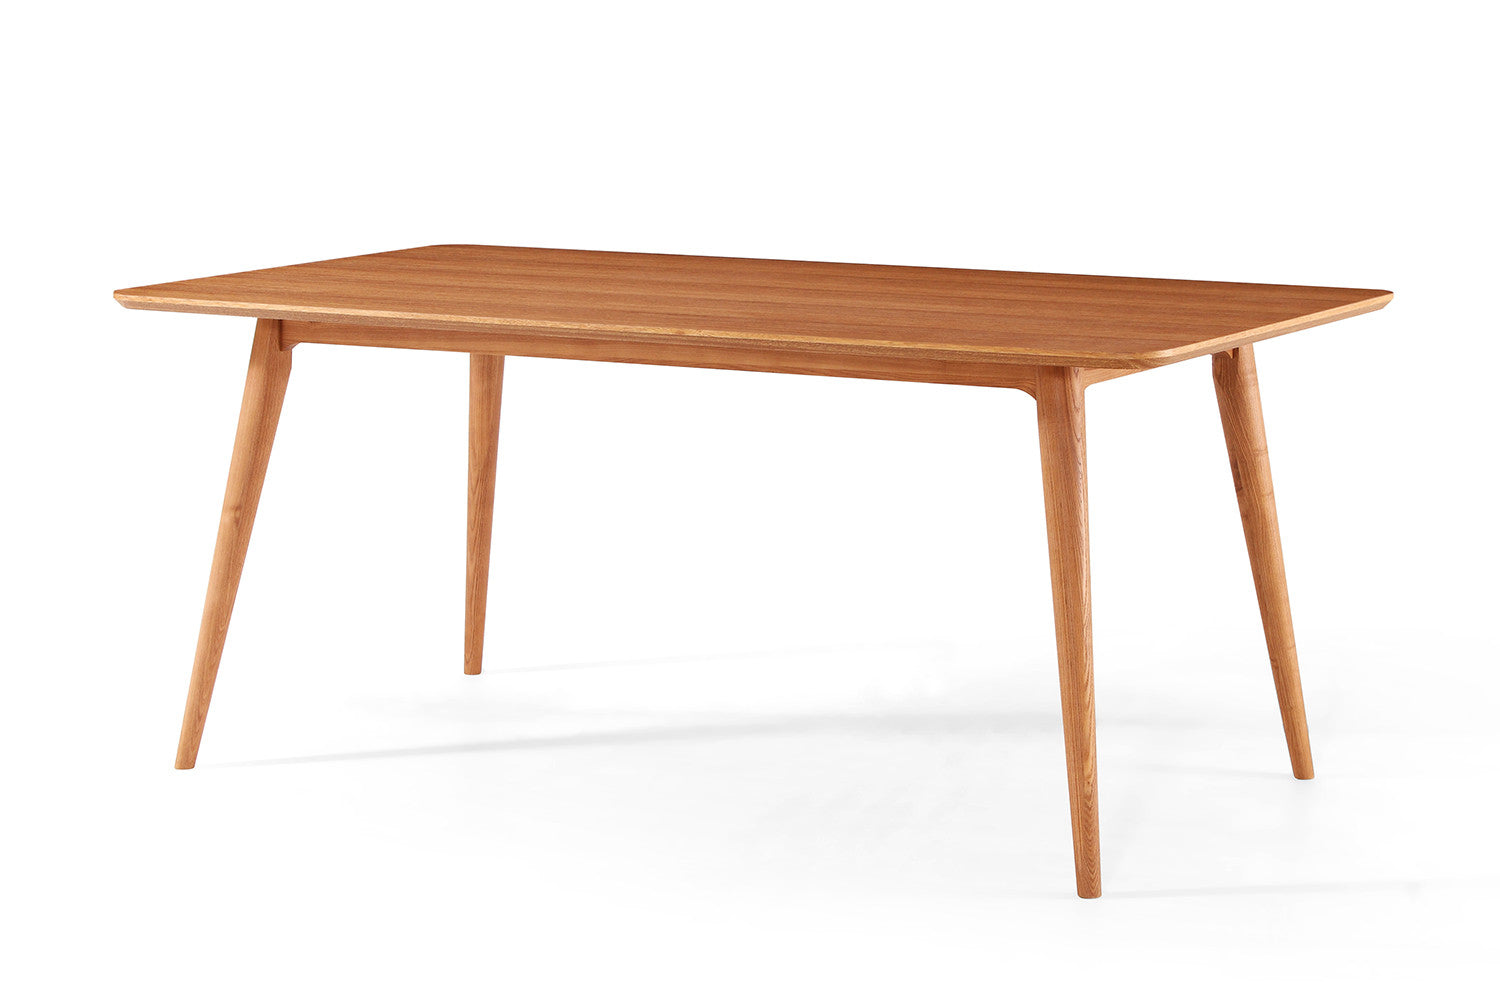 Table de salle manger design en bois julia dewarens for Xooon table salle a manger